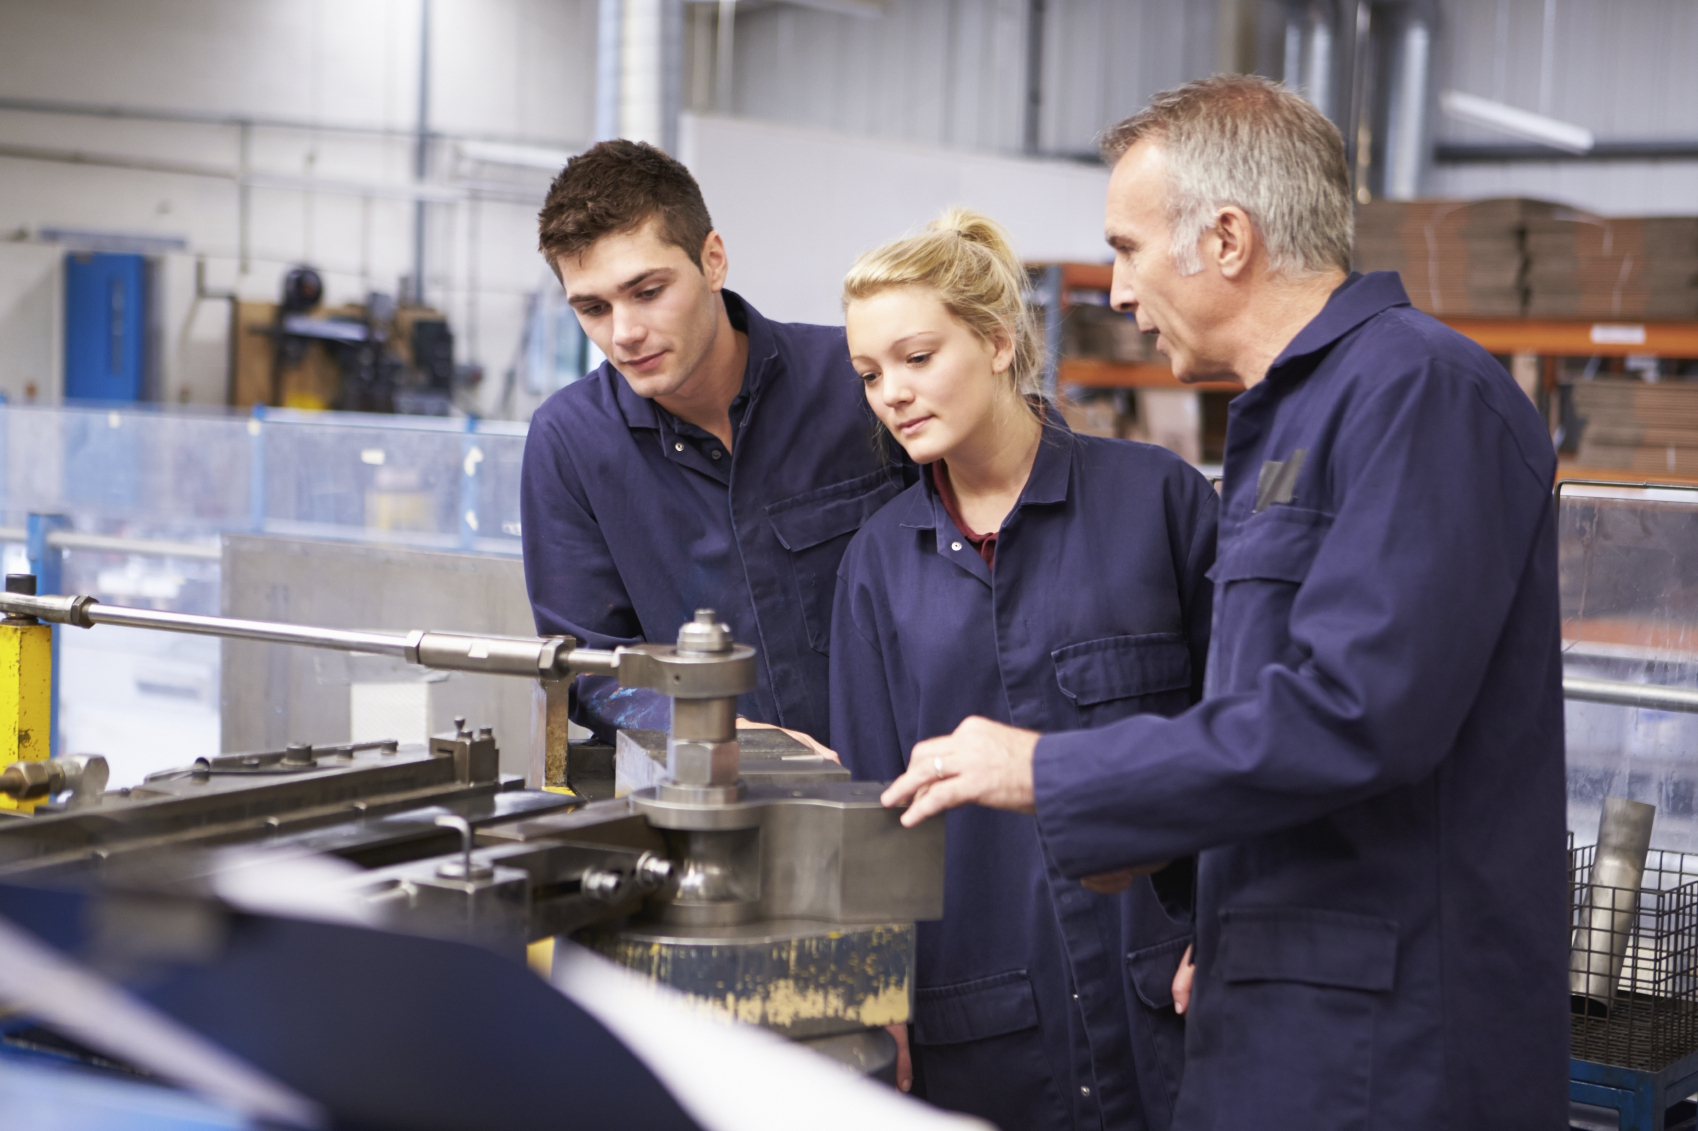 Engineer and Apprentices